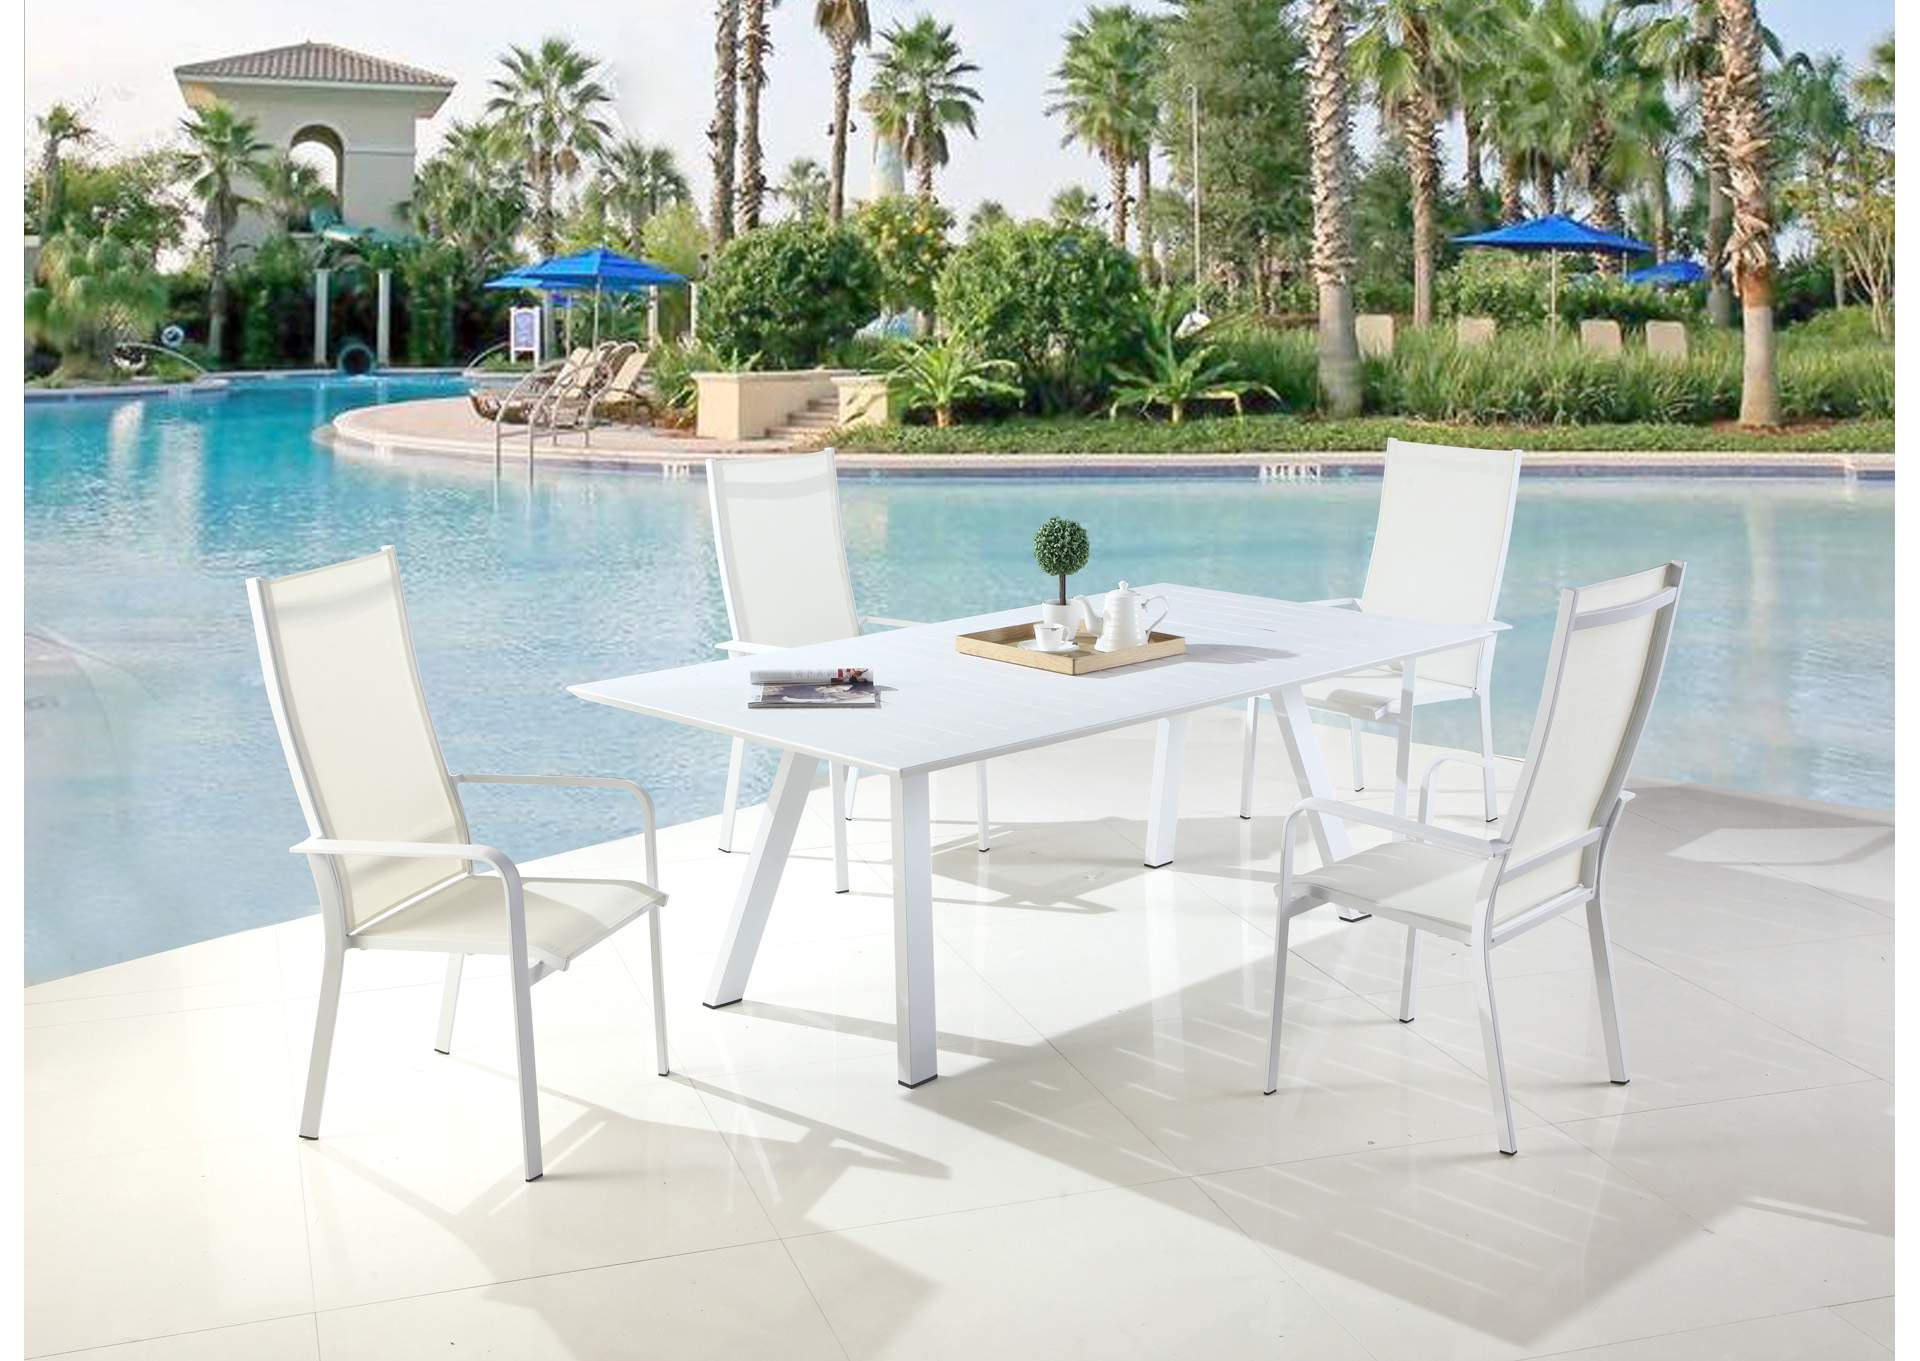 Malibu Matte White UV Resistant Outdoor Large Rectangular Table,Chintaly Imports